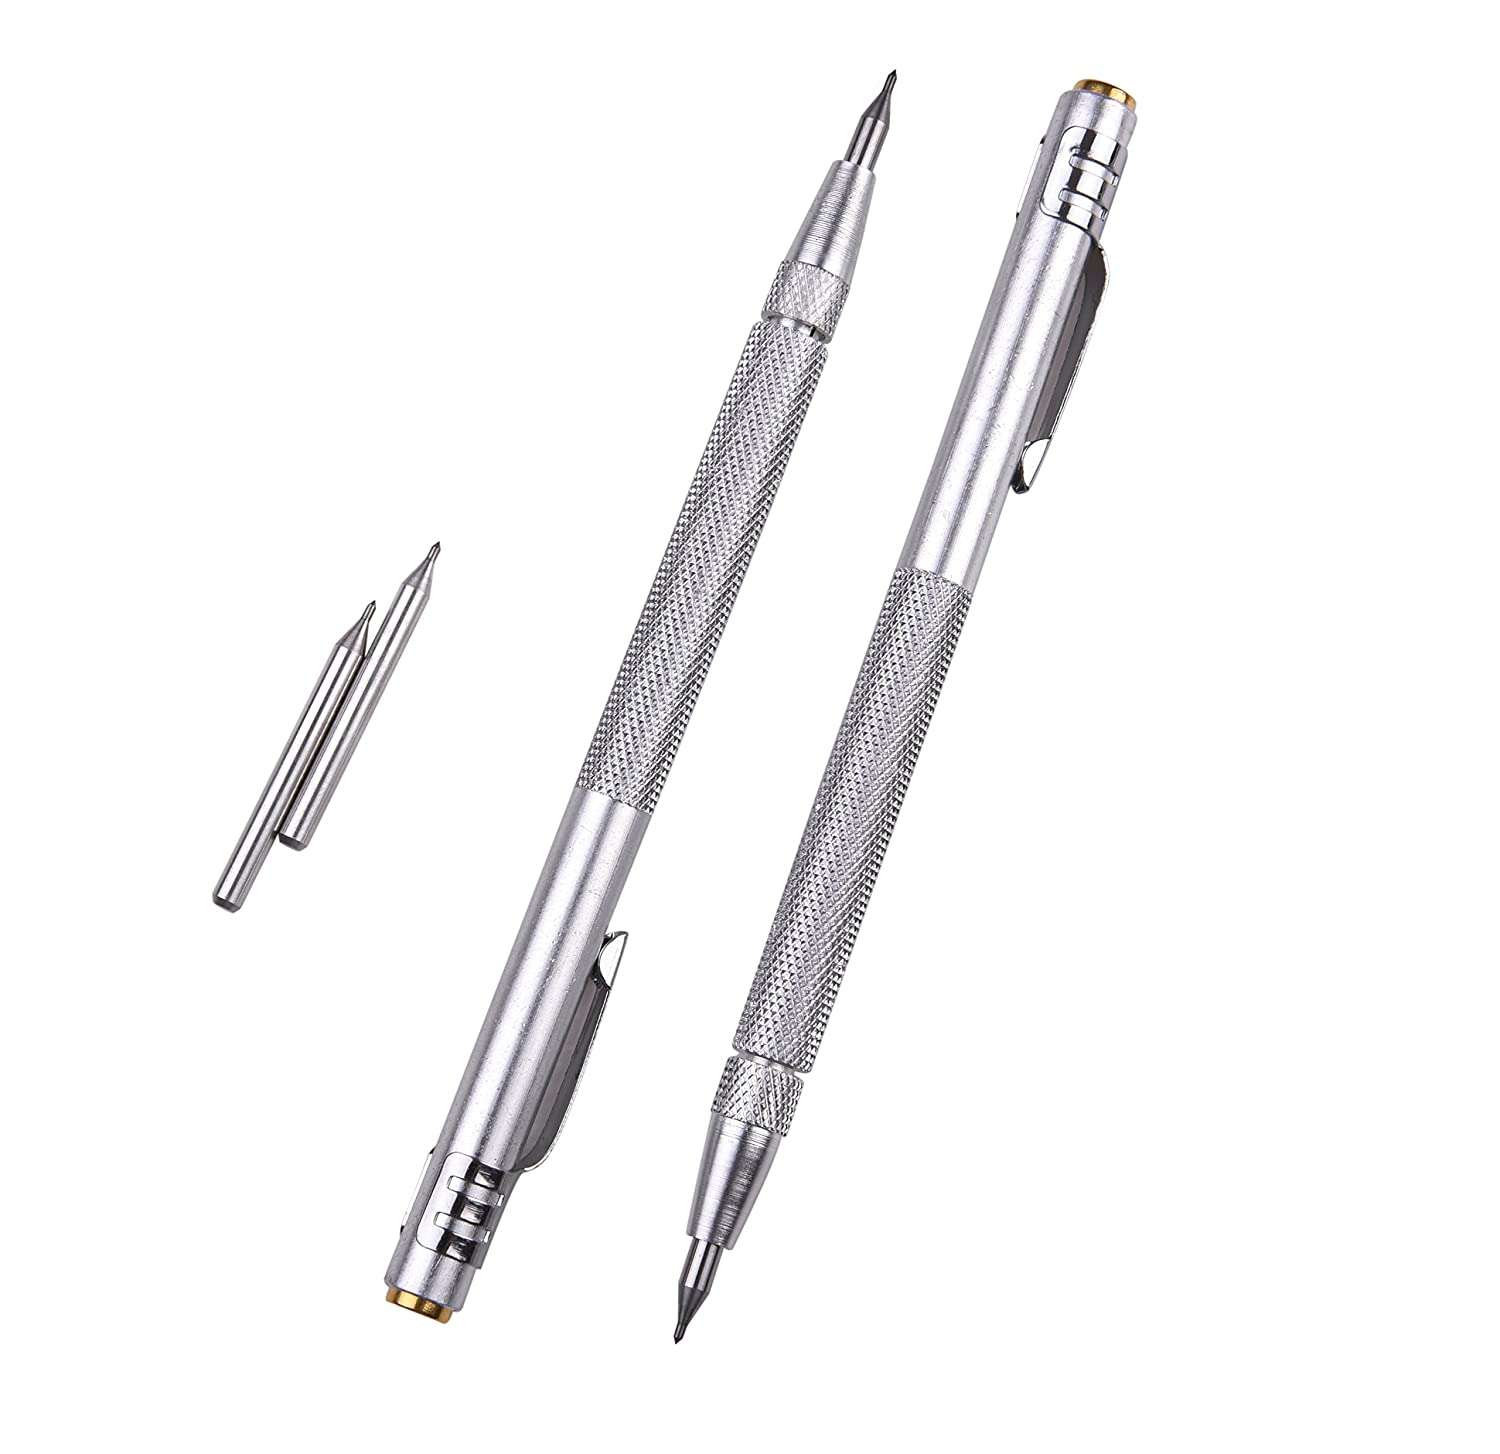 IMT Tungsten Carbide Tip Scriber 2 Pack, Aluminium Etching Engraving Pen with Clip and Magnet for Glass/Ceramics/Metal Sheet, Extra 2 Free Replacement Marking Tip